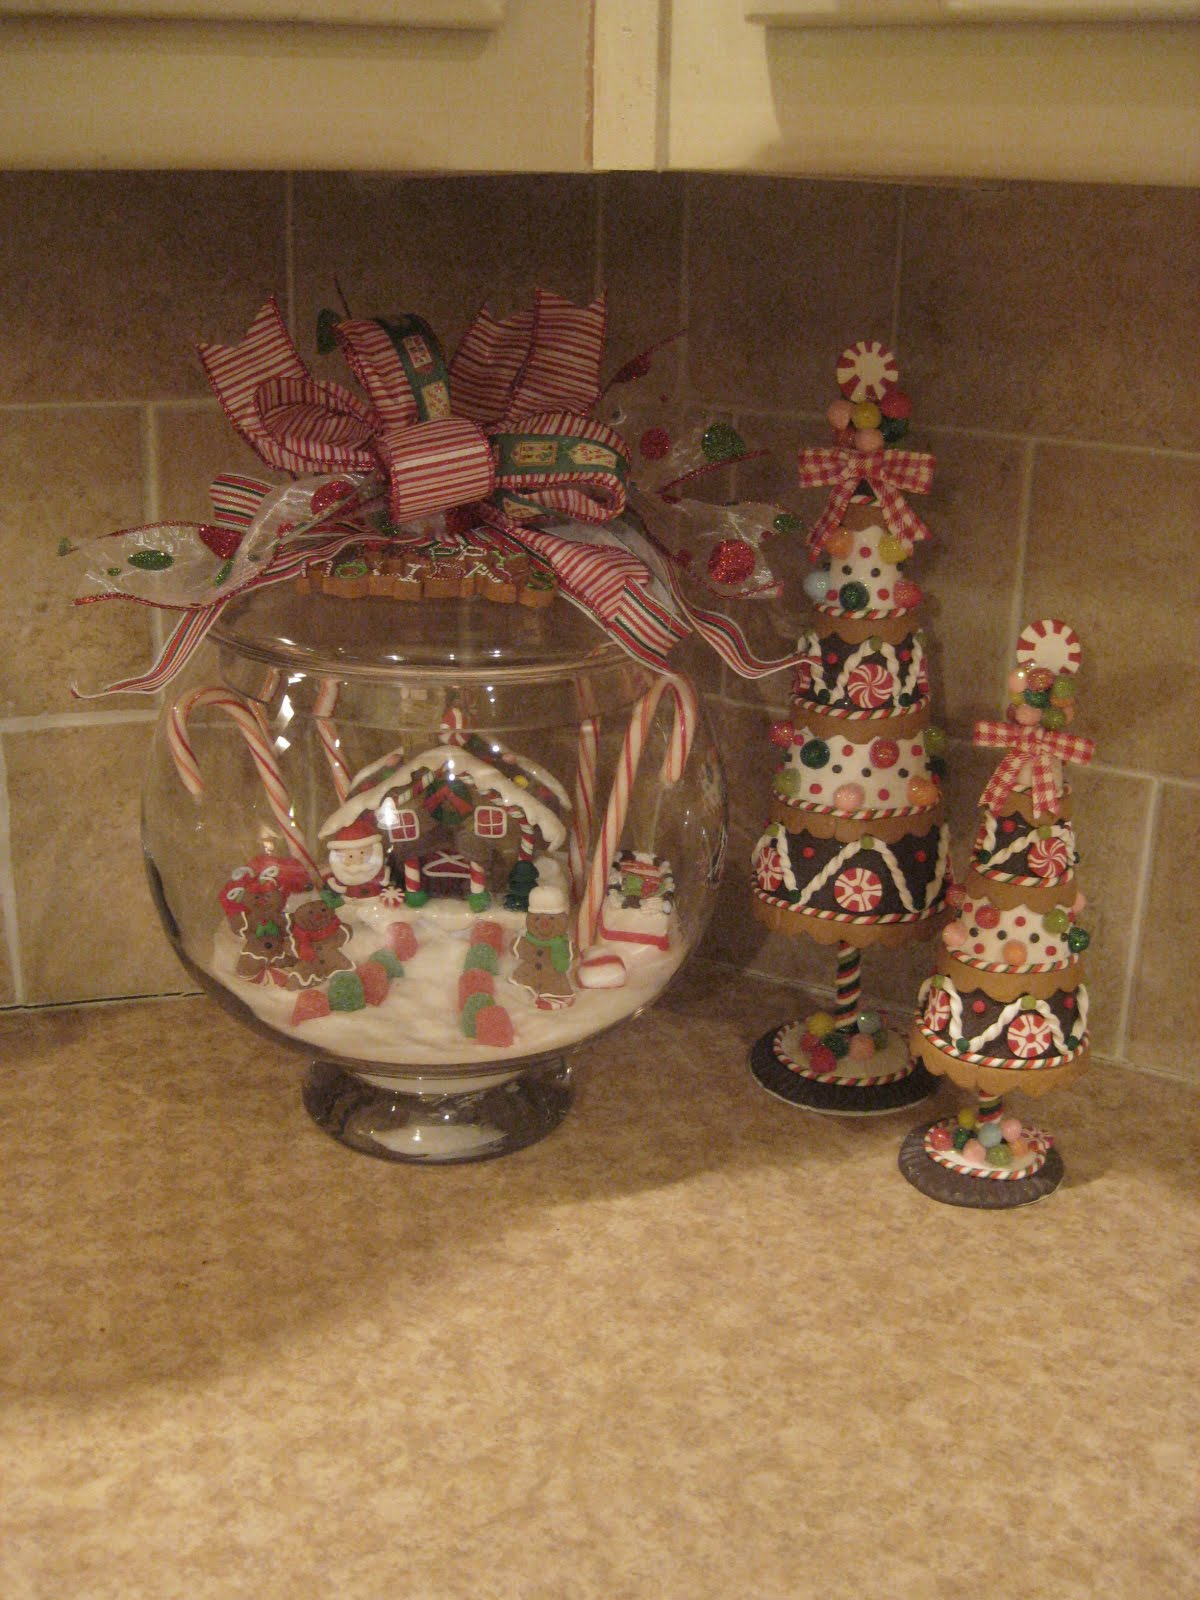 Peppermint and Gingerbread from The Seasonal Home blog ...